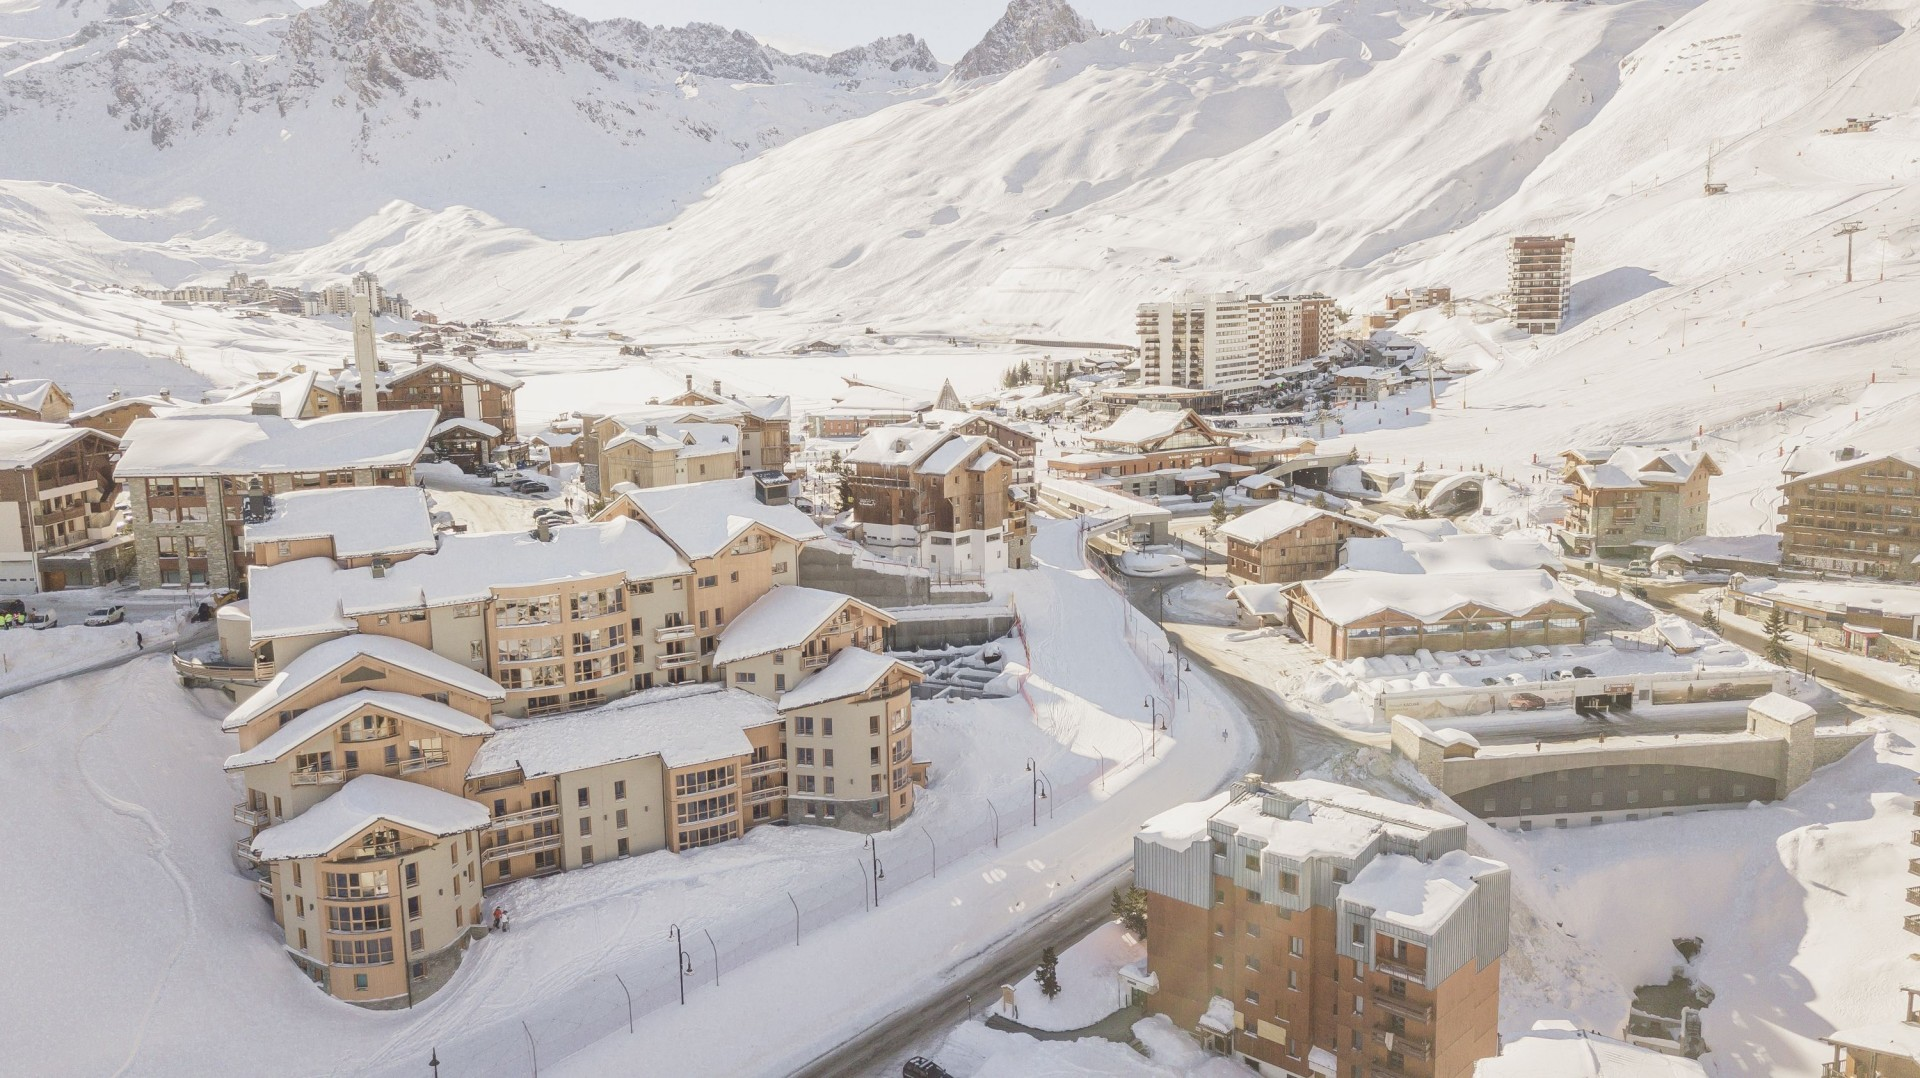 Tignes Location Appartement Luxe Kyonite Vue Paysage